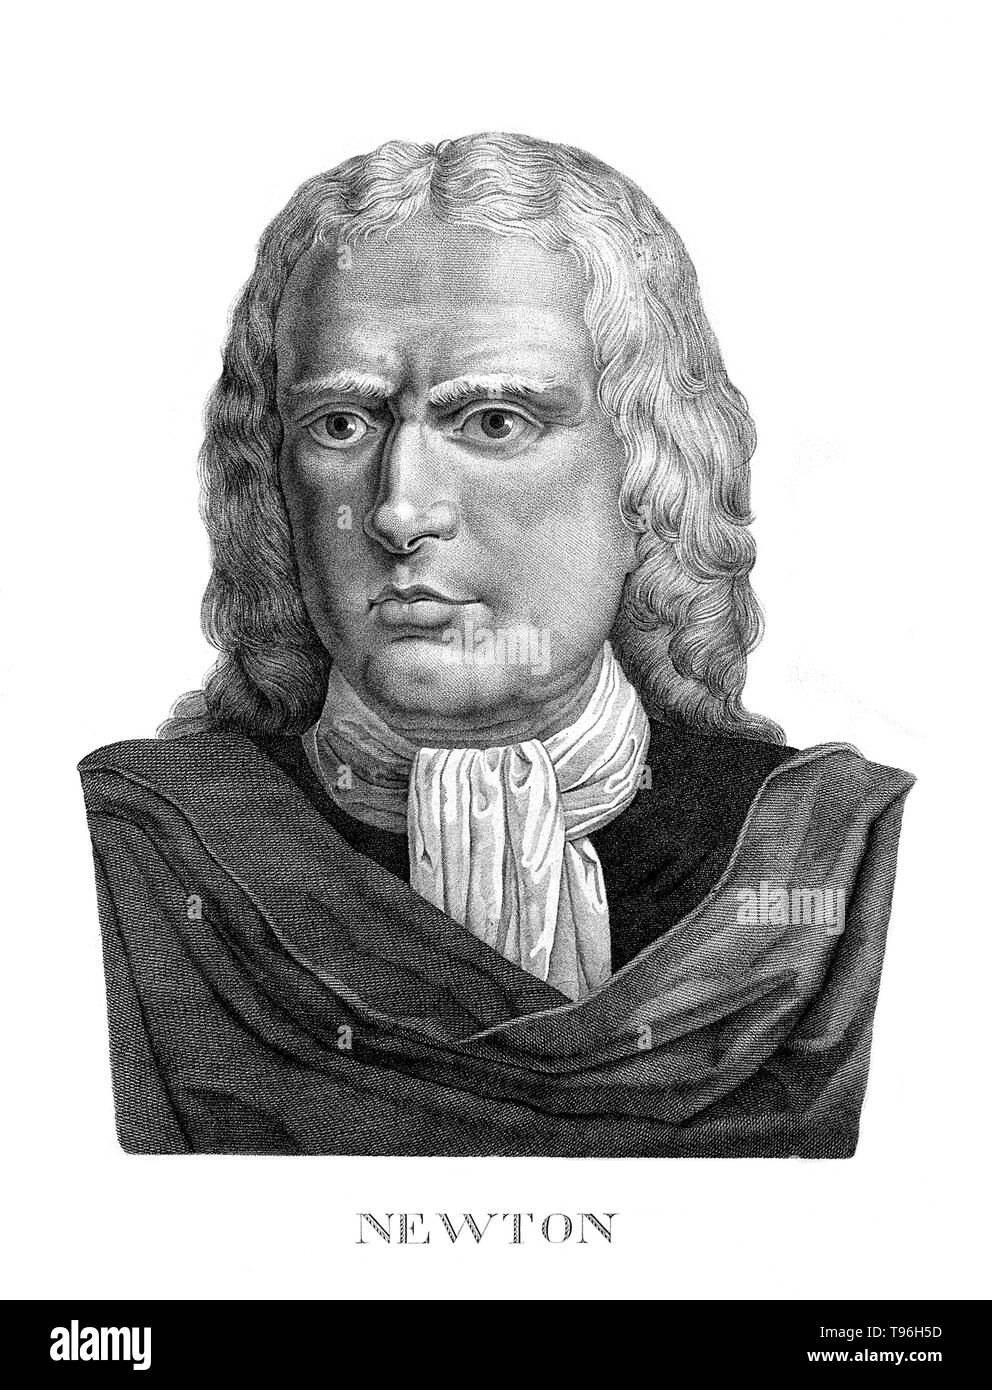 Isaac Newton (December 25, 1642 - March 20, 1727) was an English physicist, mathematician, astronomer, natural philosopher, alchemist, and theologian. His monograph ''Philosophiae Naturalis Principia Mathematica'', published in 1687, lays the foundations for most of classical mechanics. In this work, Newton described universal gravitation and the three laws of motion, which dominated the scientific view of the physical universe for the next three centuries. - Stock Image